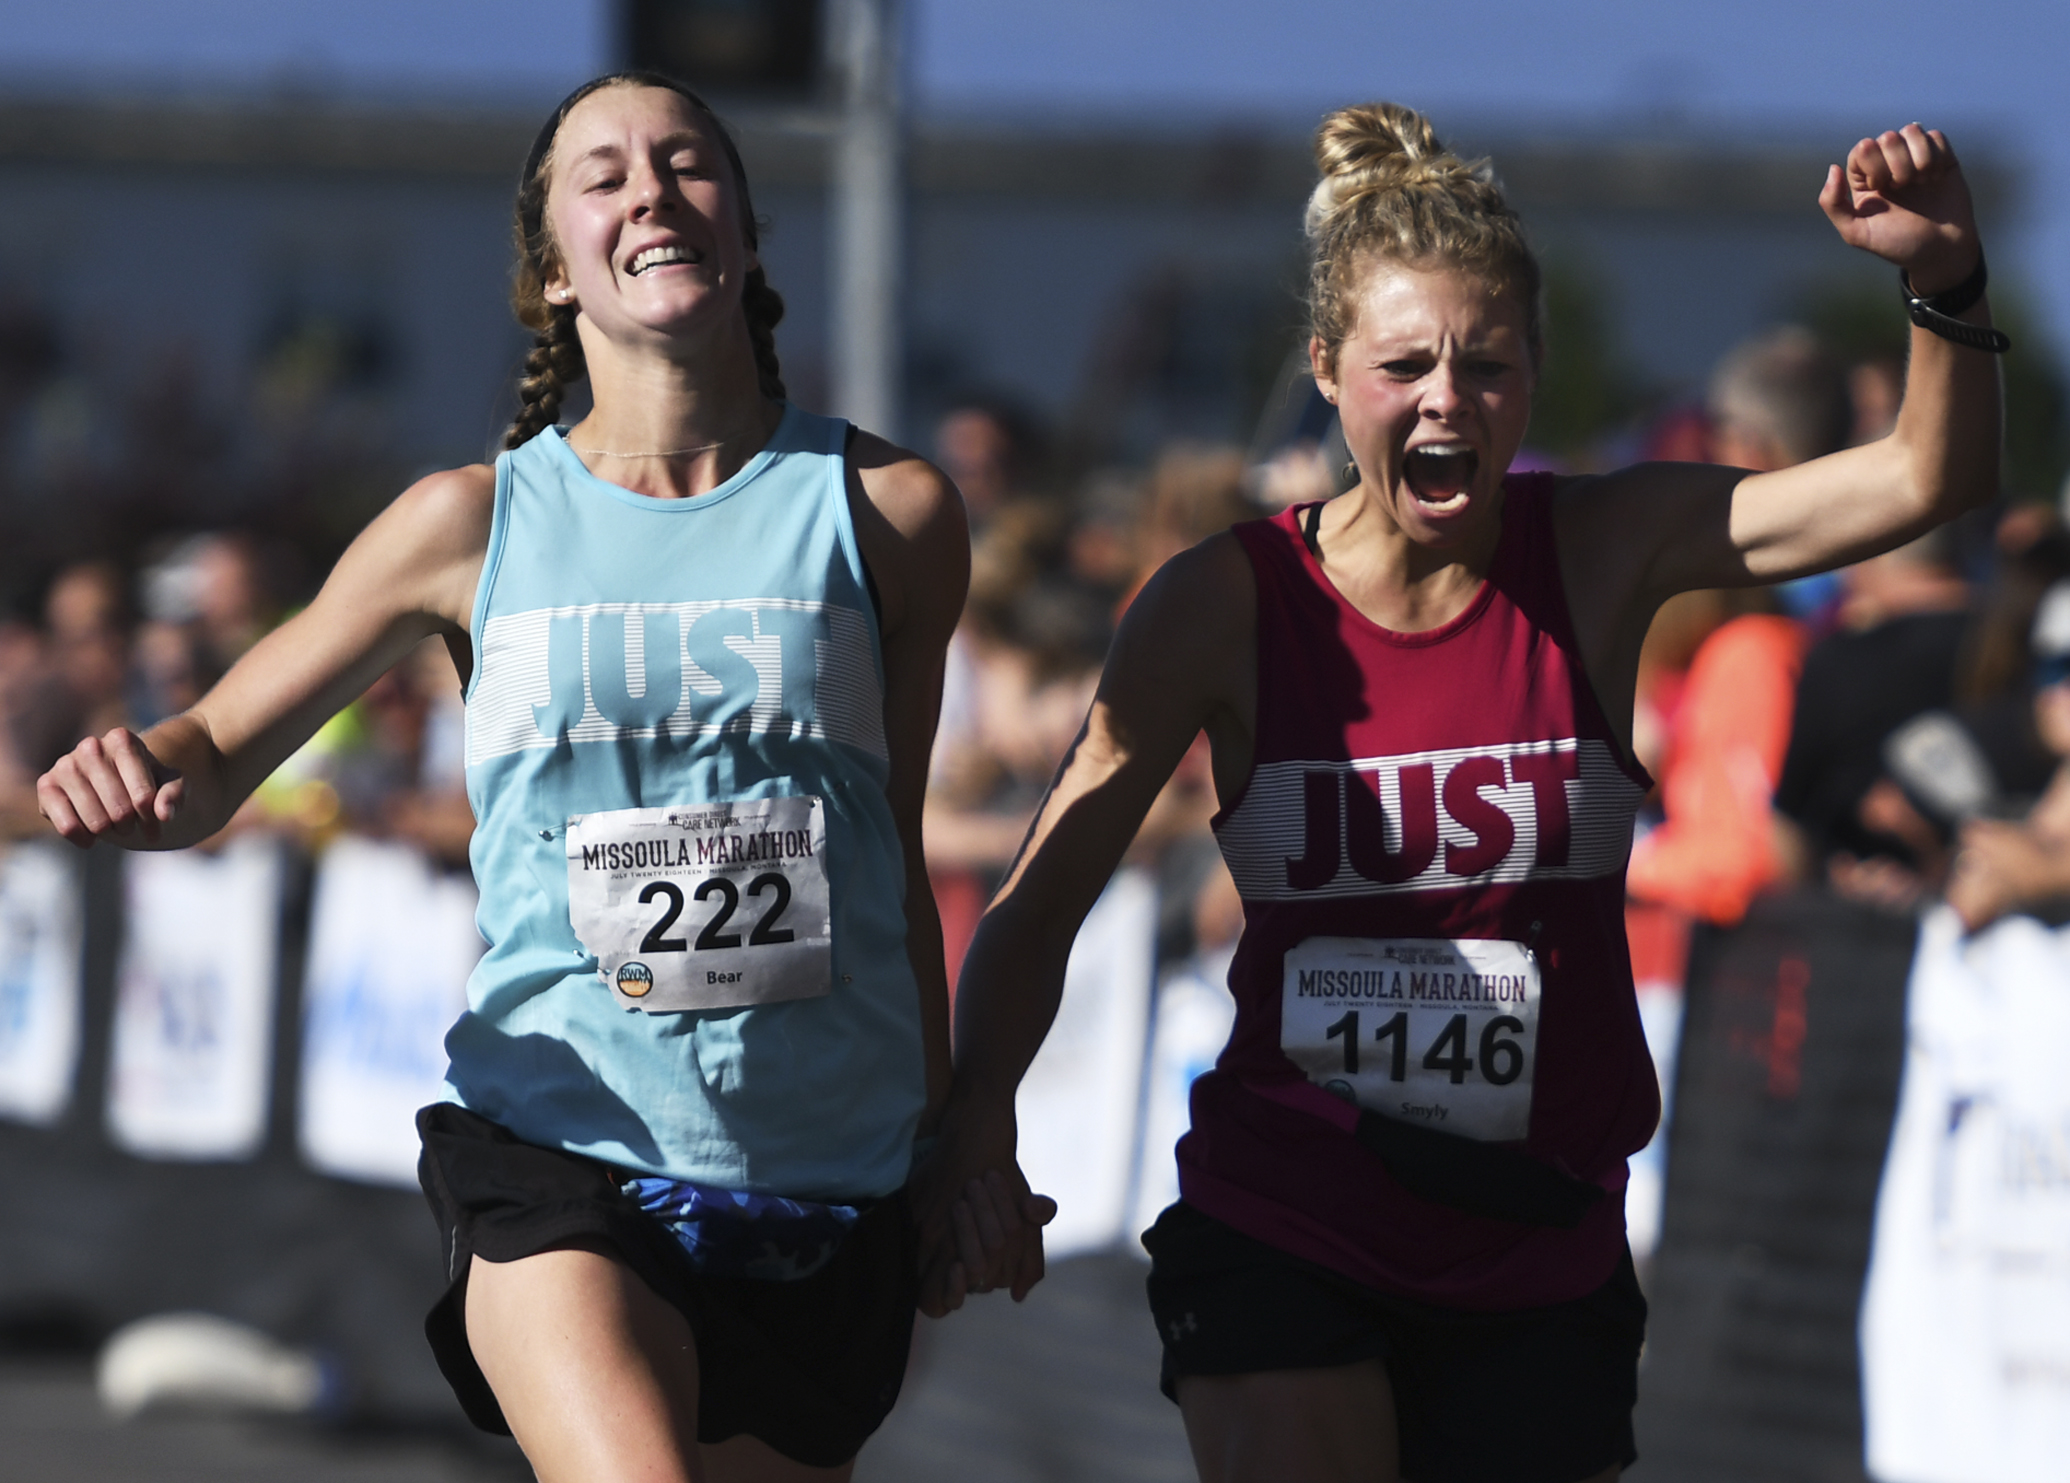 Blair Brady (222) and Sydney Smyly (1146) react as they cross the finish line for the full marathon on the Higgins Street bridge Sunday morning. Smyly and Brady finished with a chip time of 3:17:53.42.